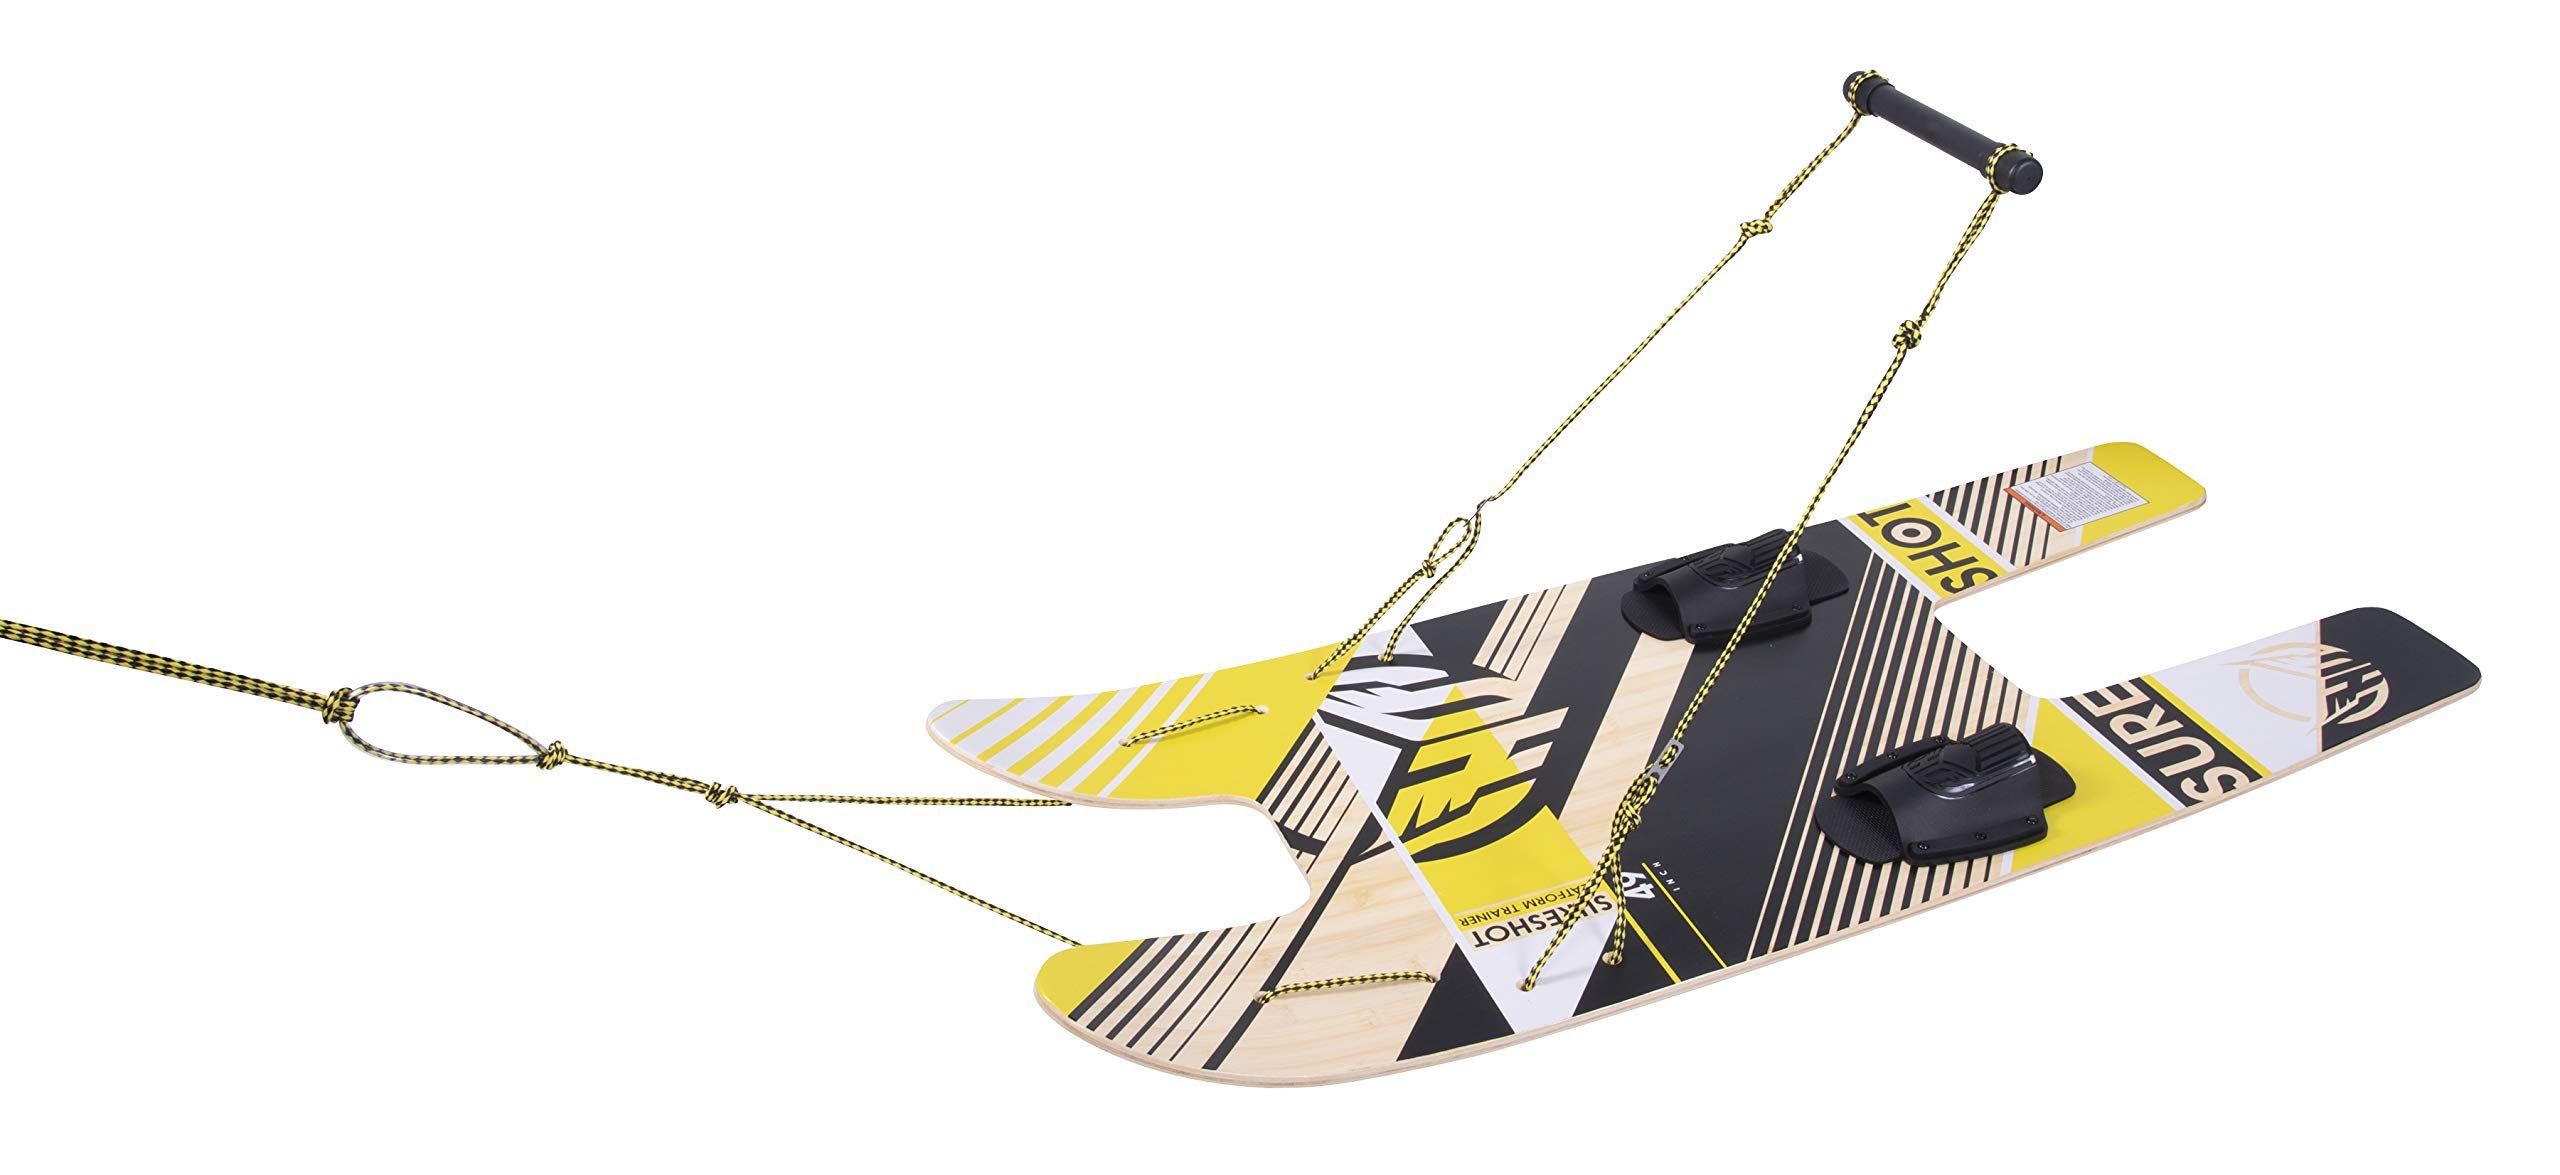 HO Sports Sure Shot Platform Trainer with Rope Water Ski